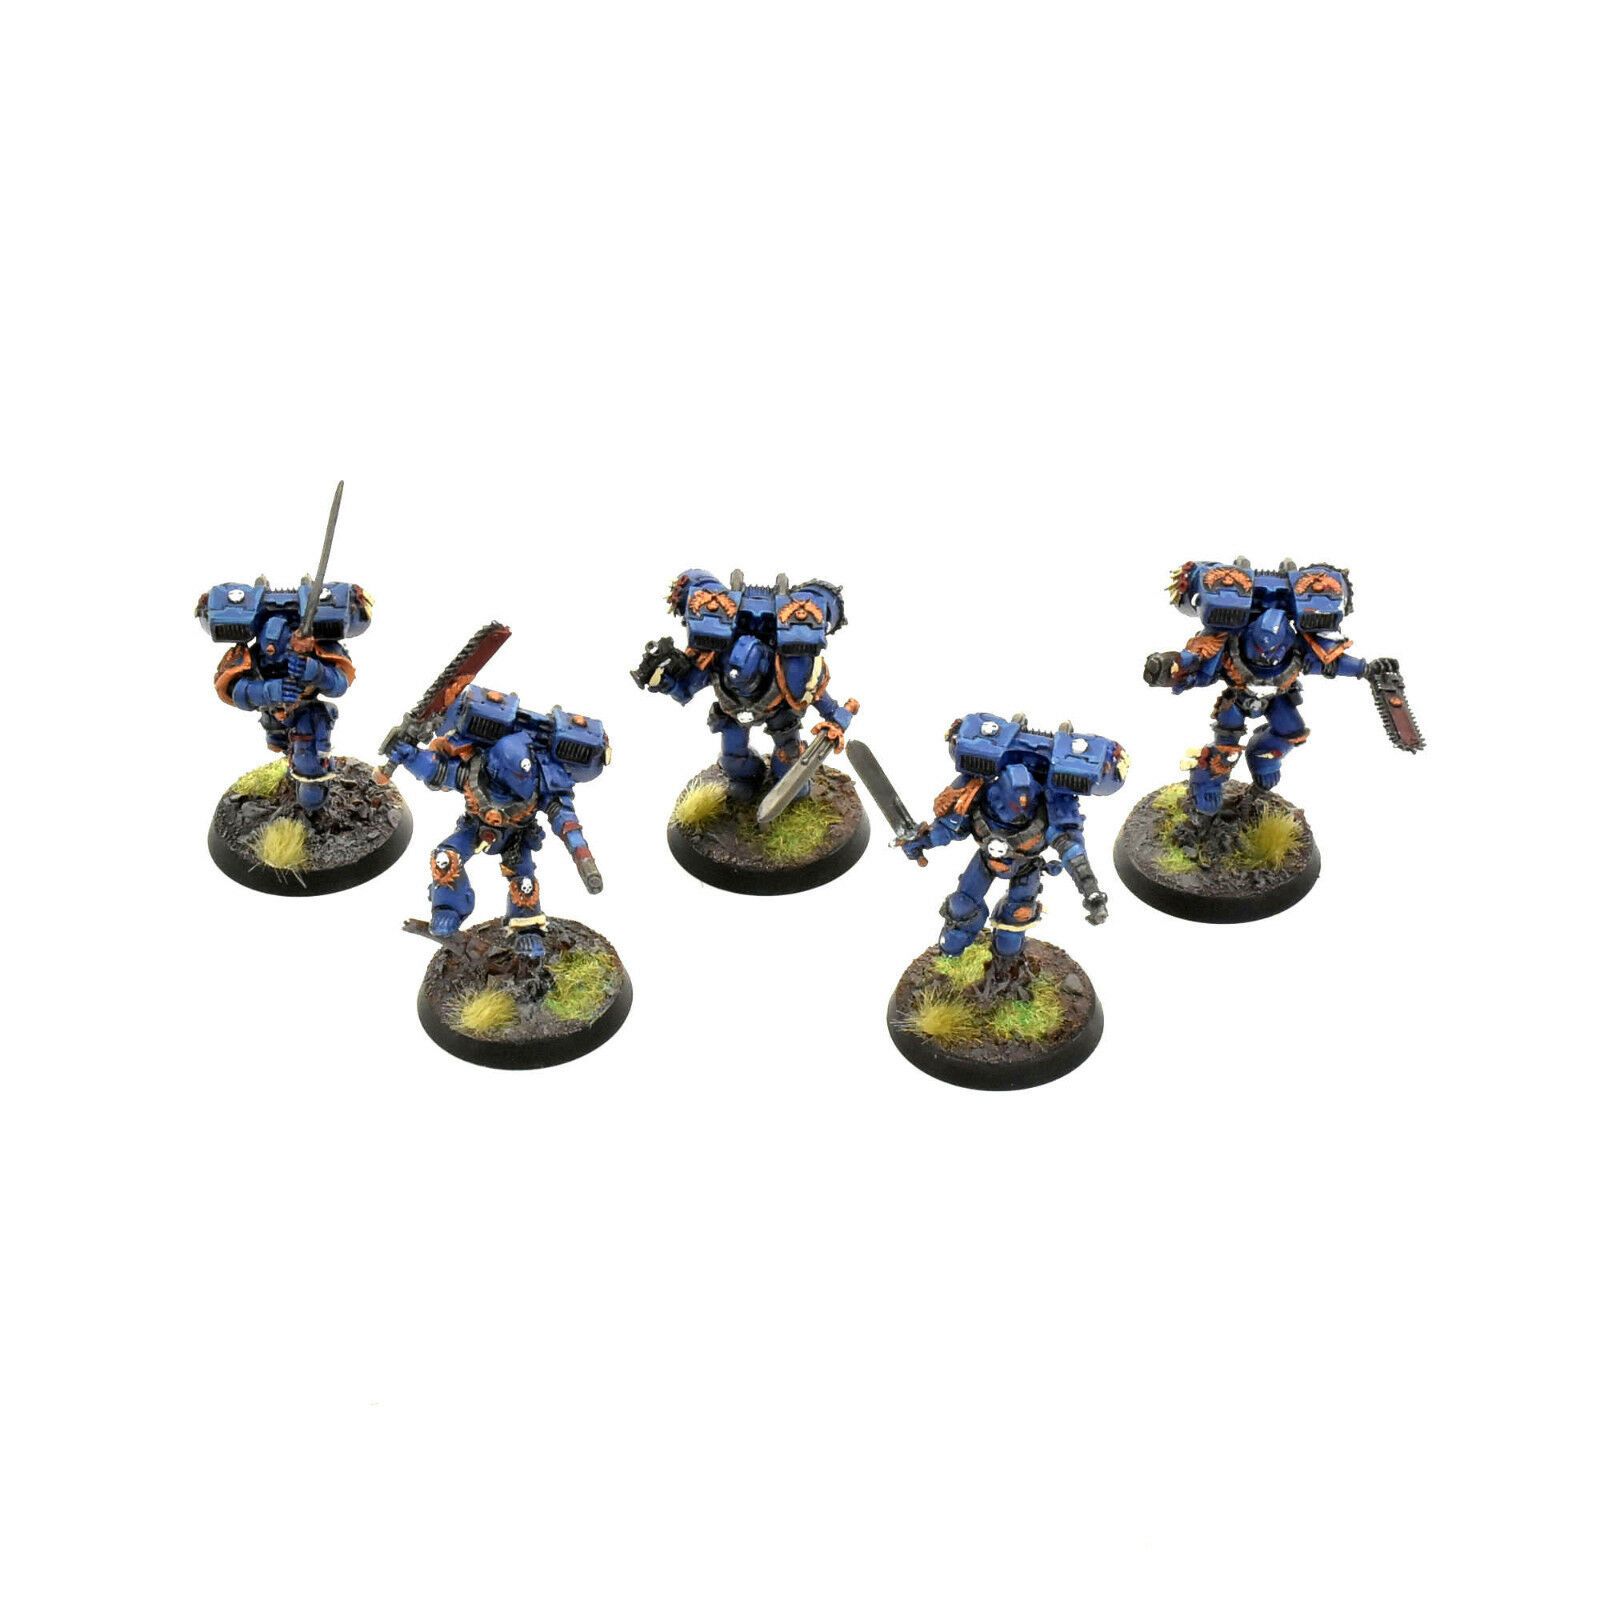 SPACE MARINES 5 vanguard veteran squad METAL WELL PAINTED 40K ULTRAMARINES